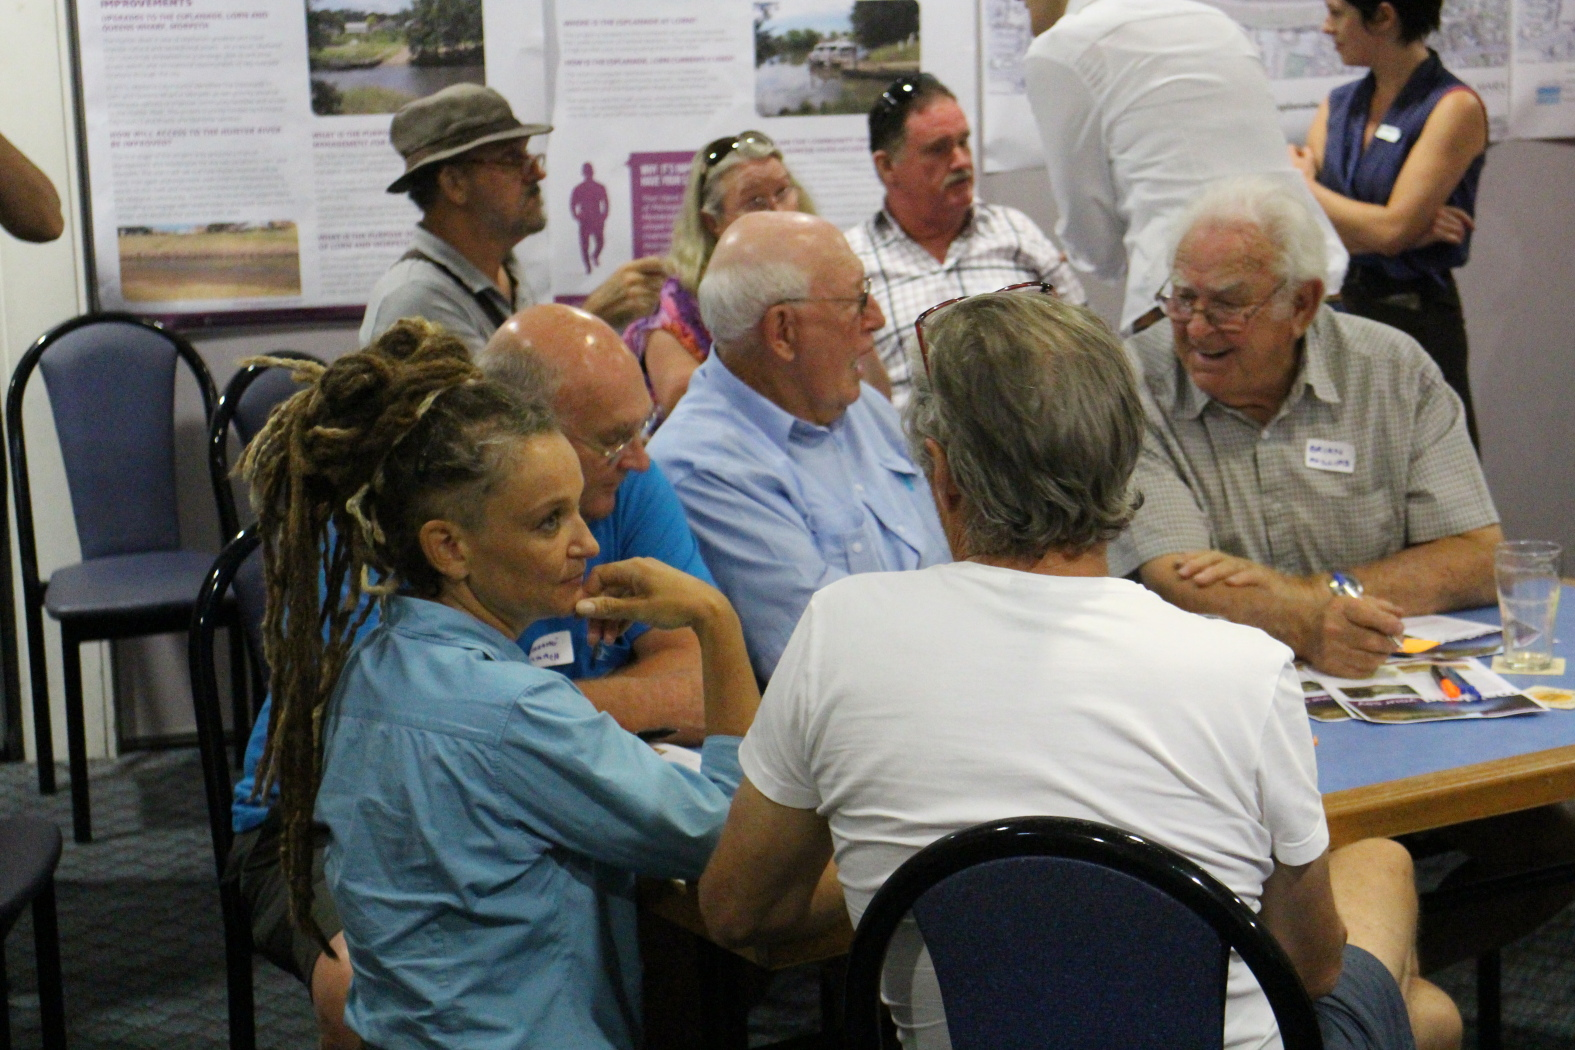 Participants at a Lorn Riverbank stakeholder workshop